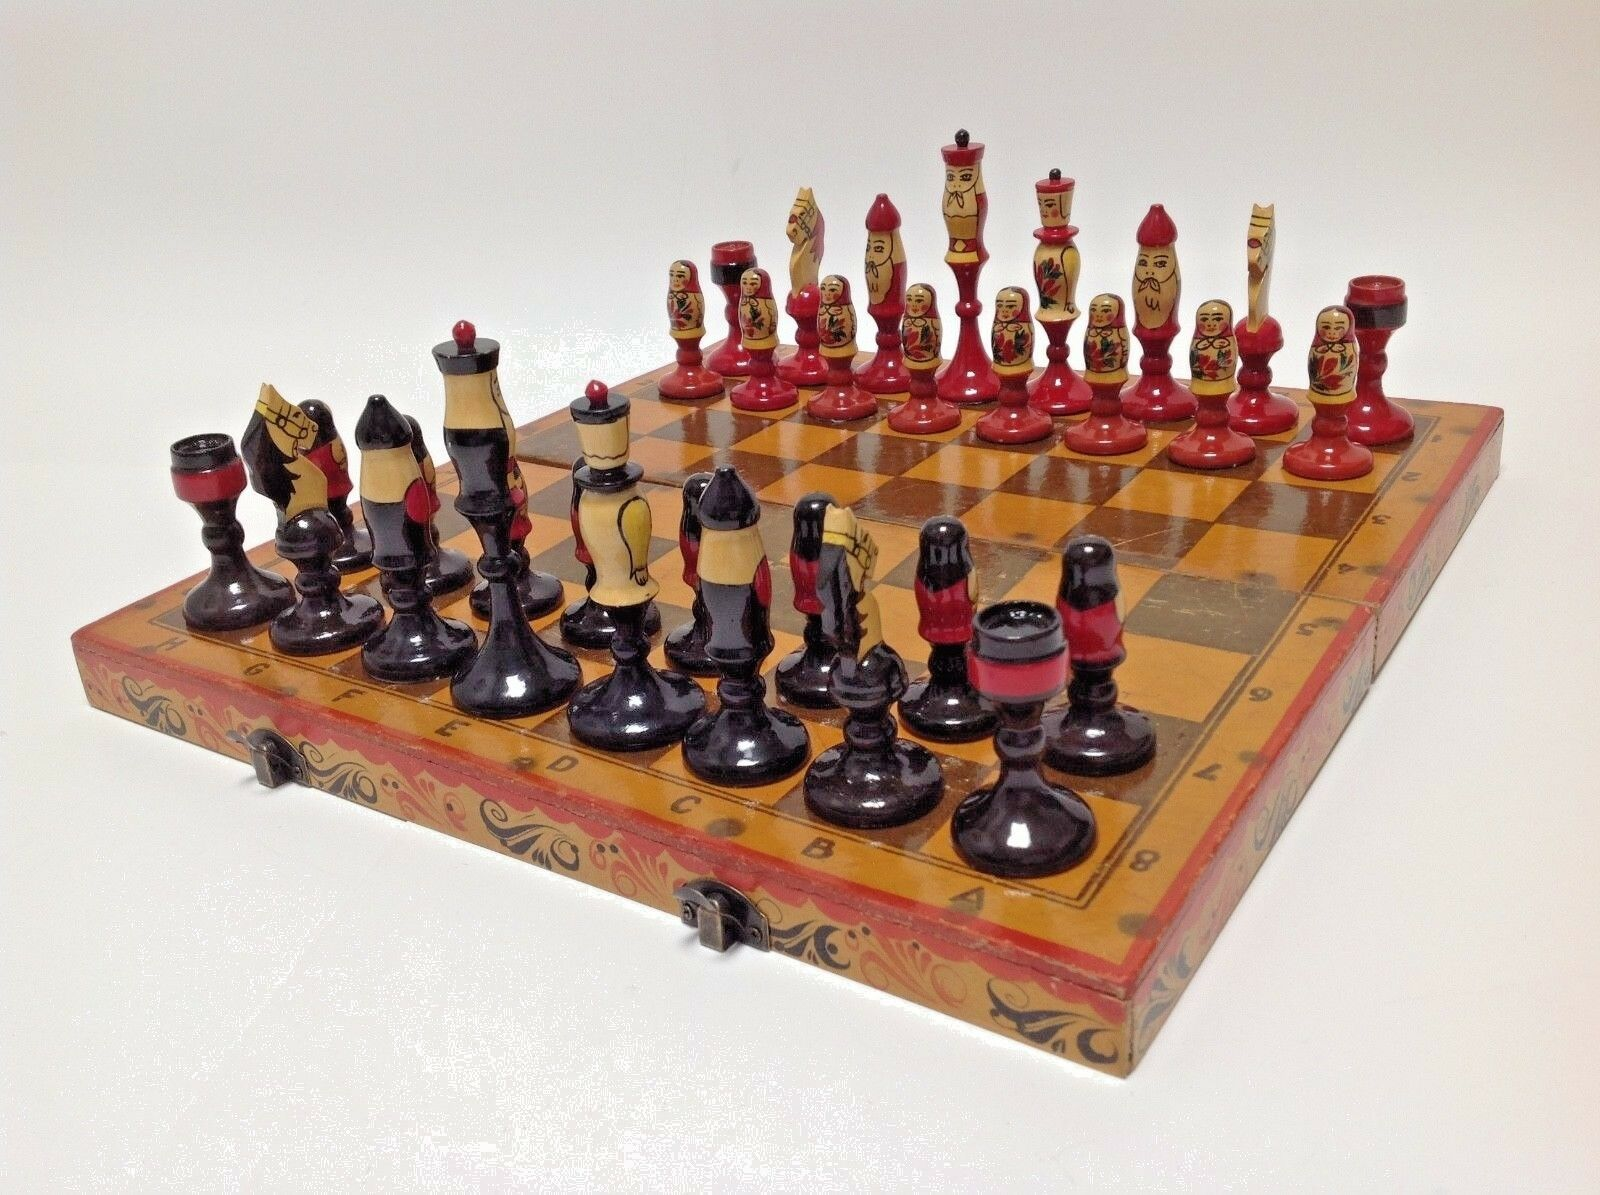 SUPERB VINTAGE CHESS SET USSR RUSSIAN DOLL THEMED WITH HAND PAINTED BOX   BOARD